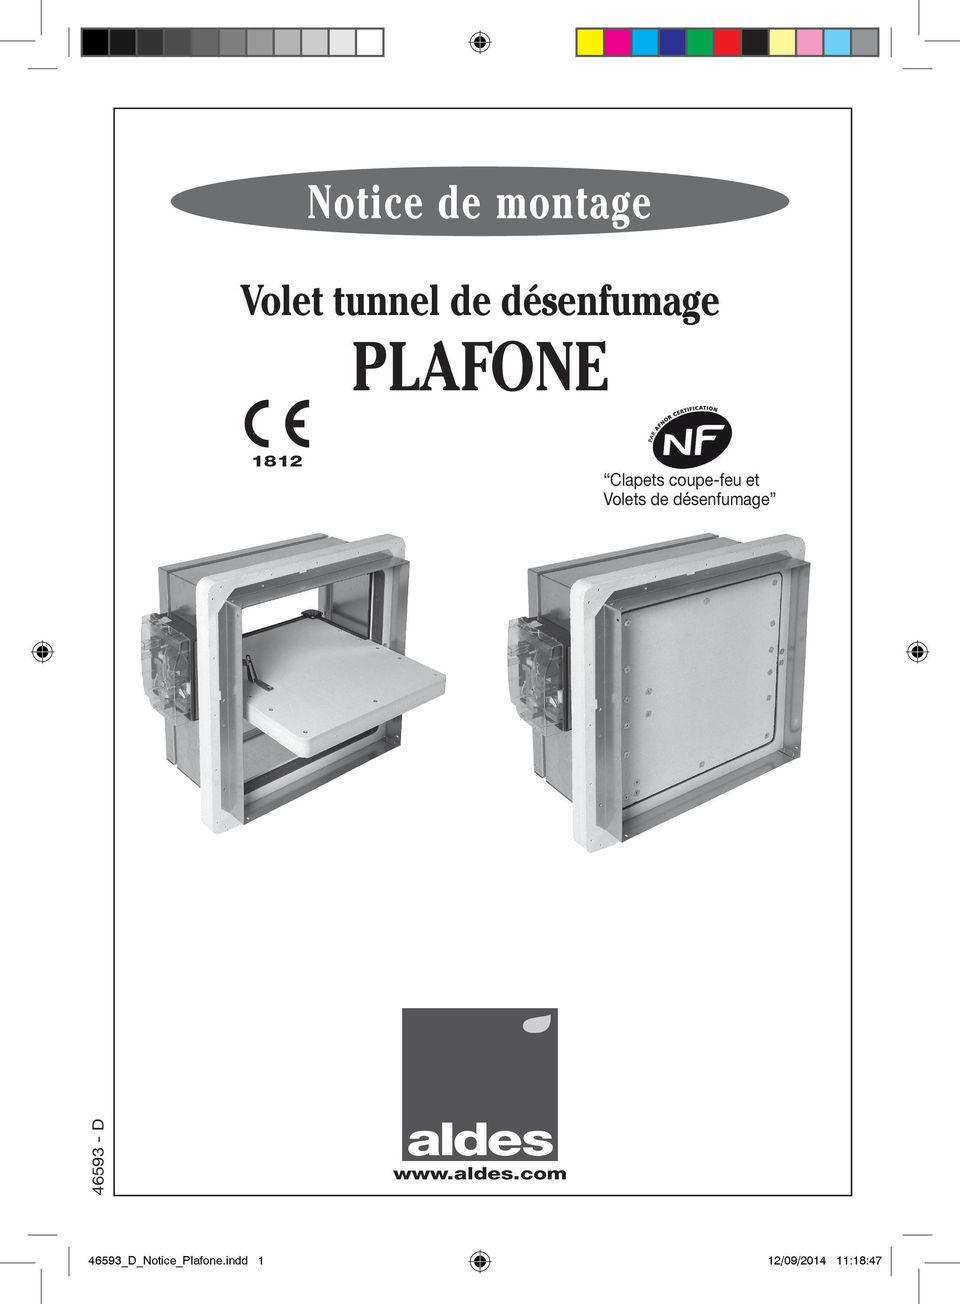 notice de montage volet tunnel de d senfumage plafone clapets coupe feu et volets de. Black Bedroom Furniture Sets. Home Design Ideas